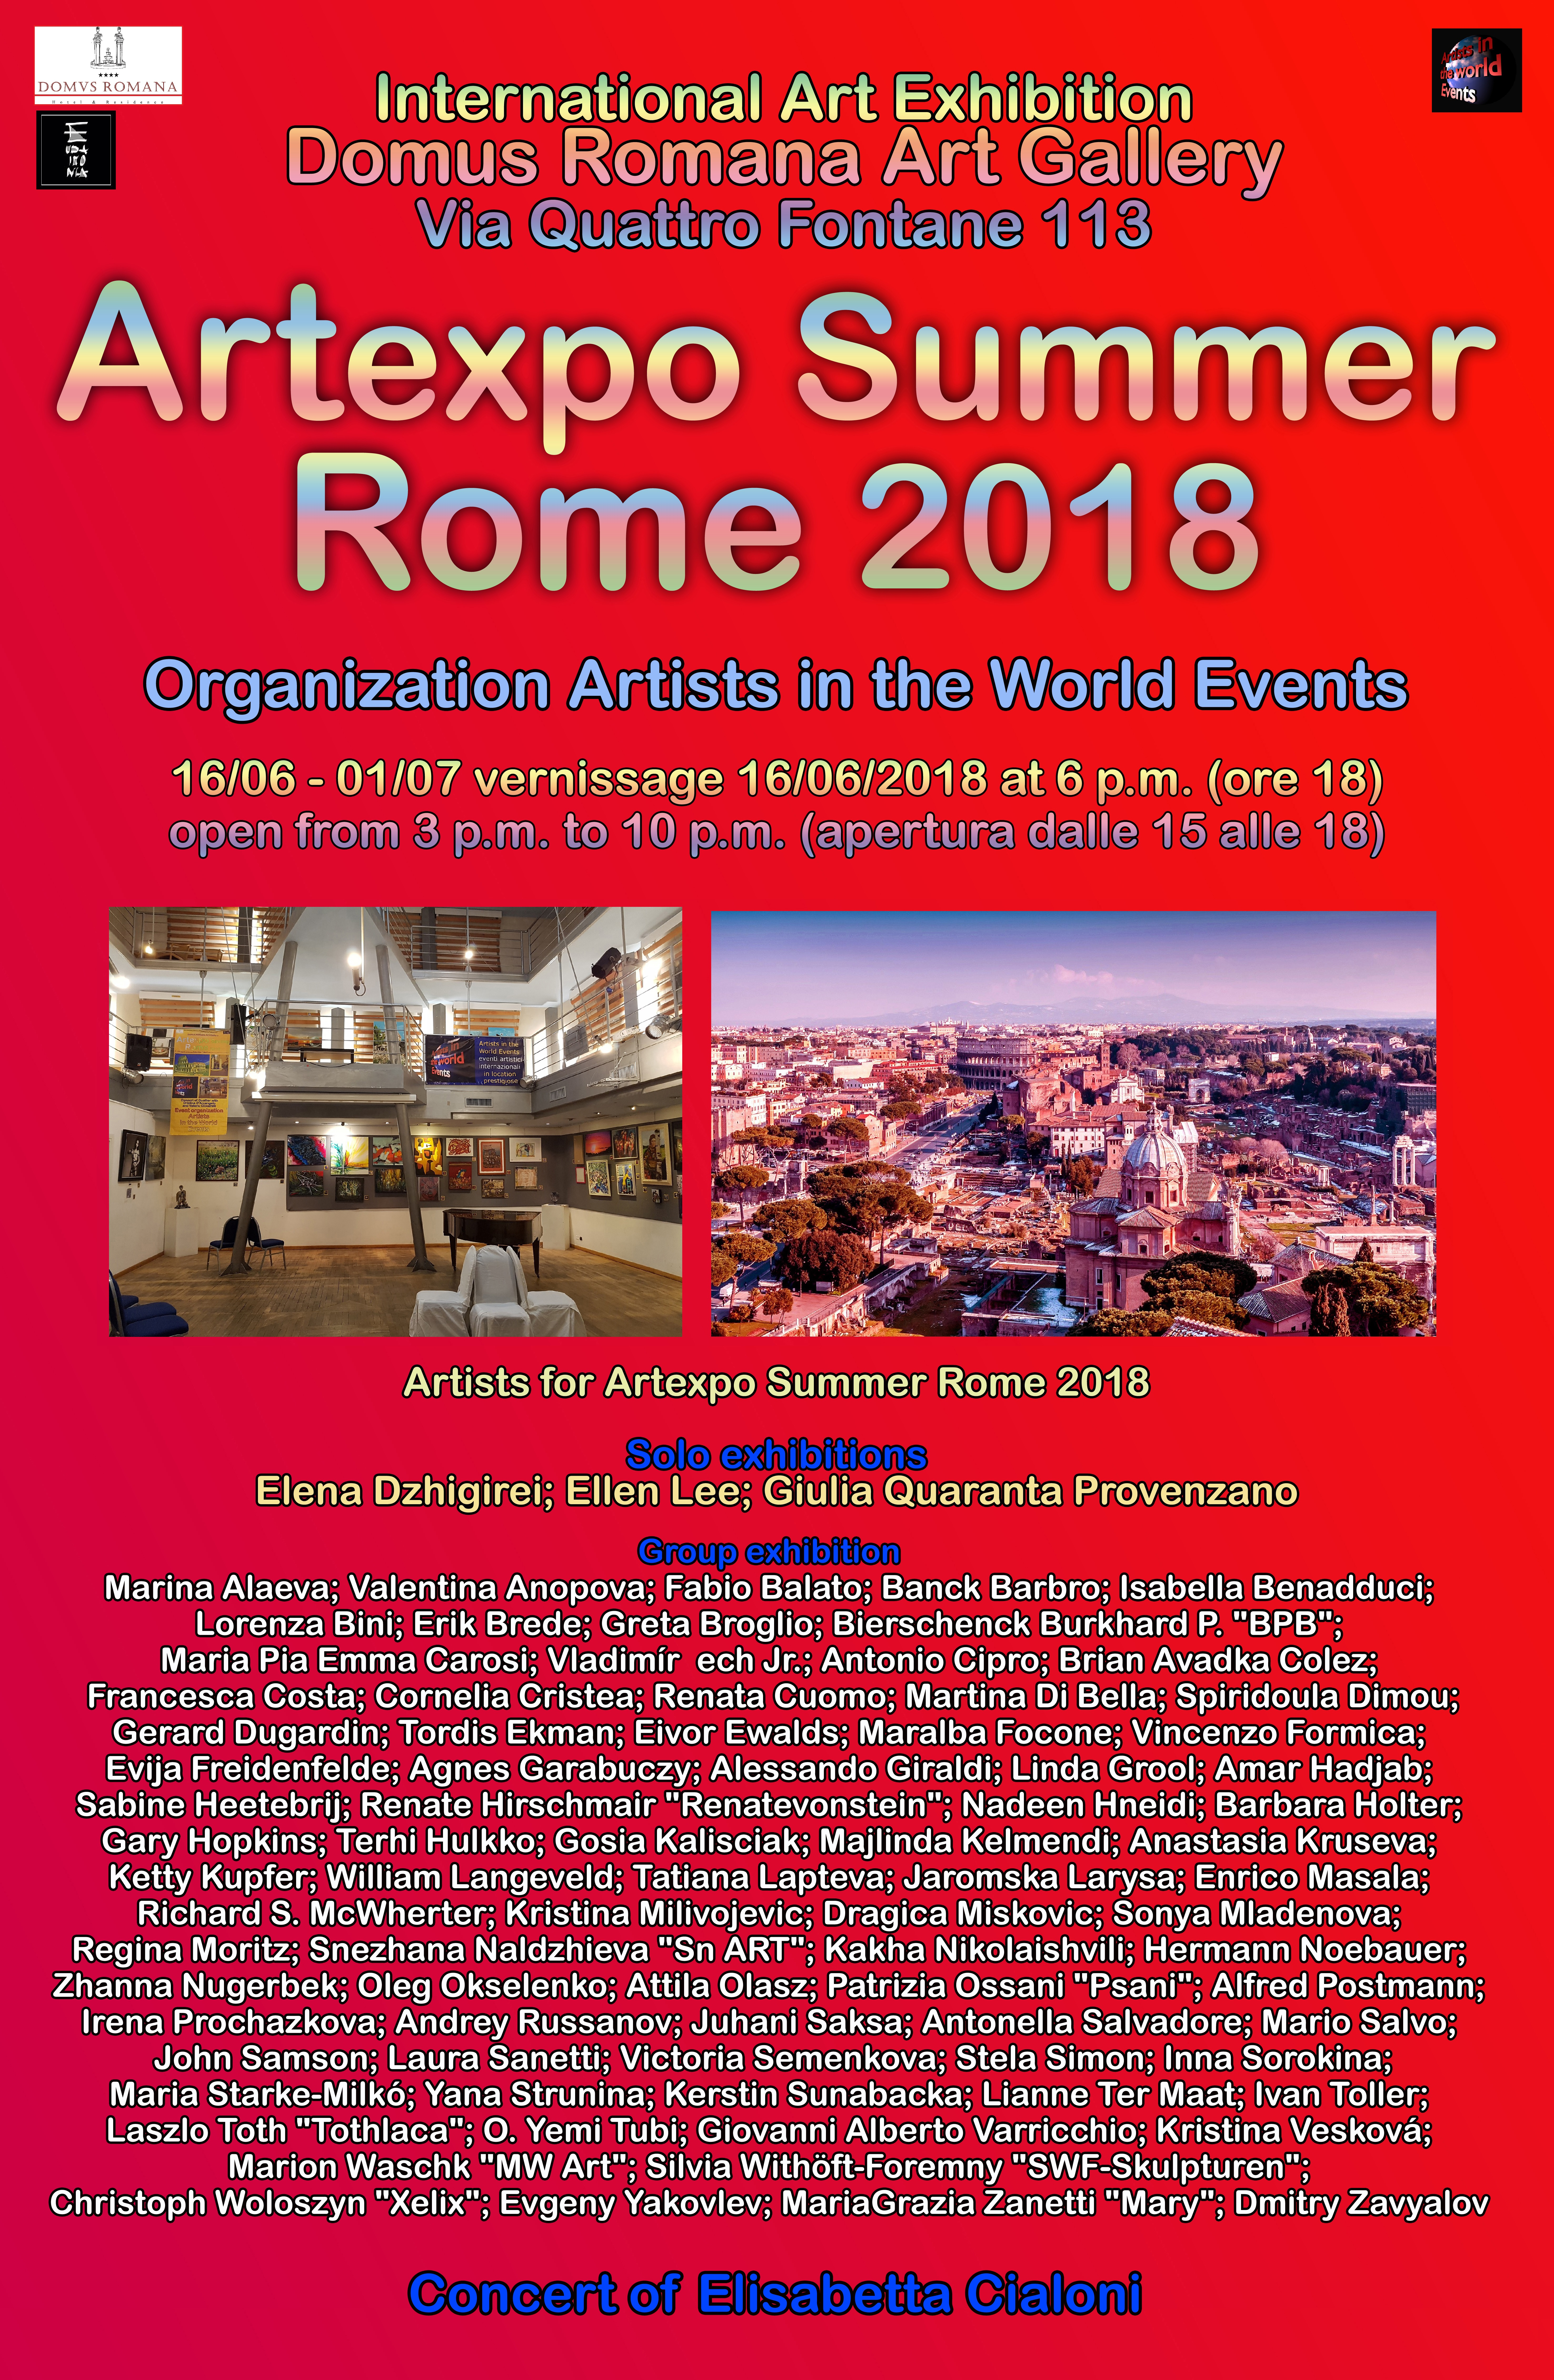 MW Art Marion Waschk mit dem Gemälde Audrey Hepburn auf der Artexpo Summer Rome 2018, Organisation Artists in the world events